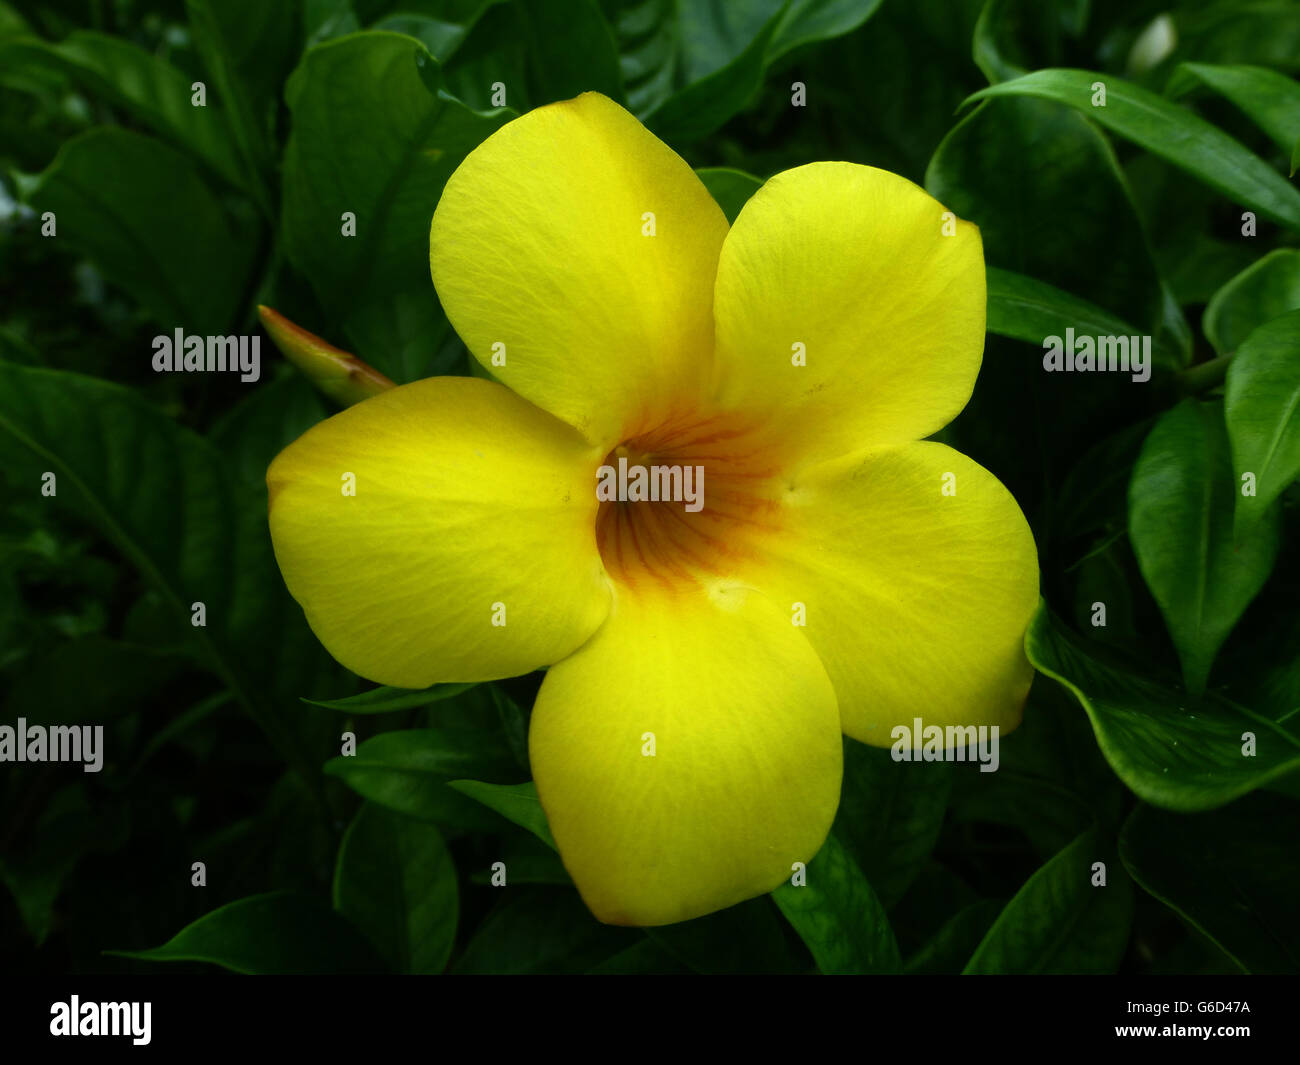 Beautiful yellow tropical flowers from jamaica stock photo beautiful yellow tropical flowers from jamaica izmirmasajfo